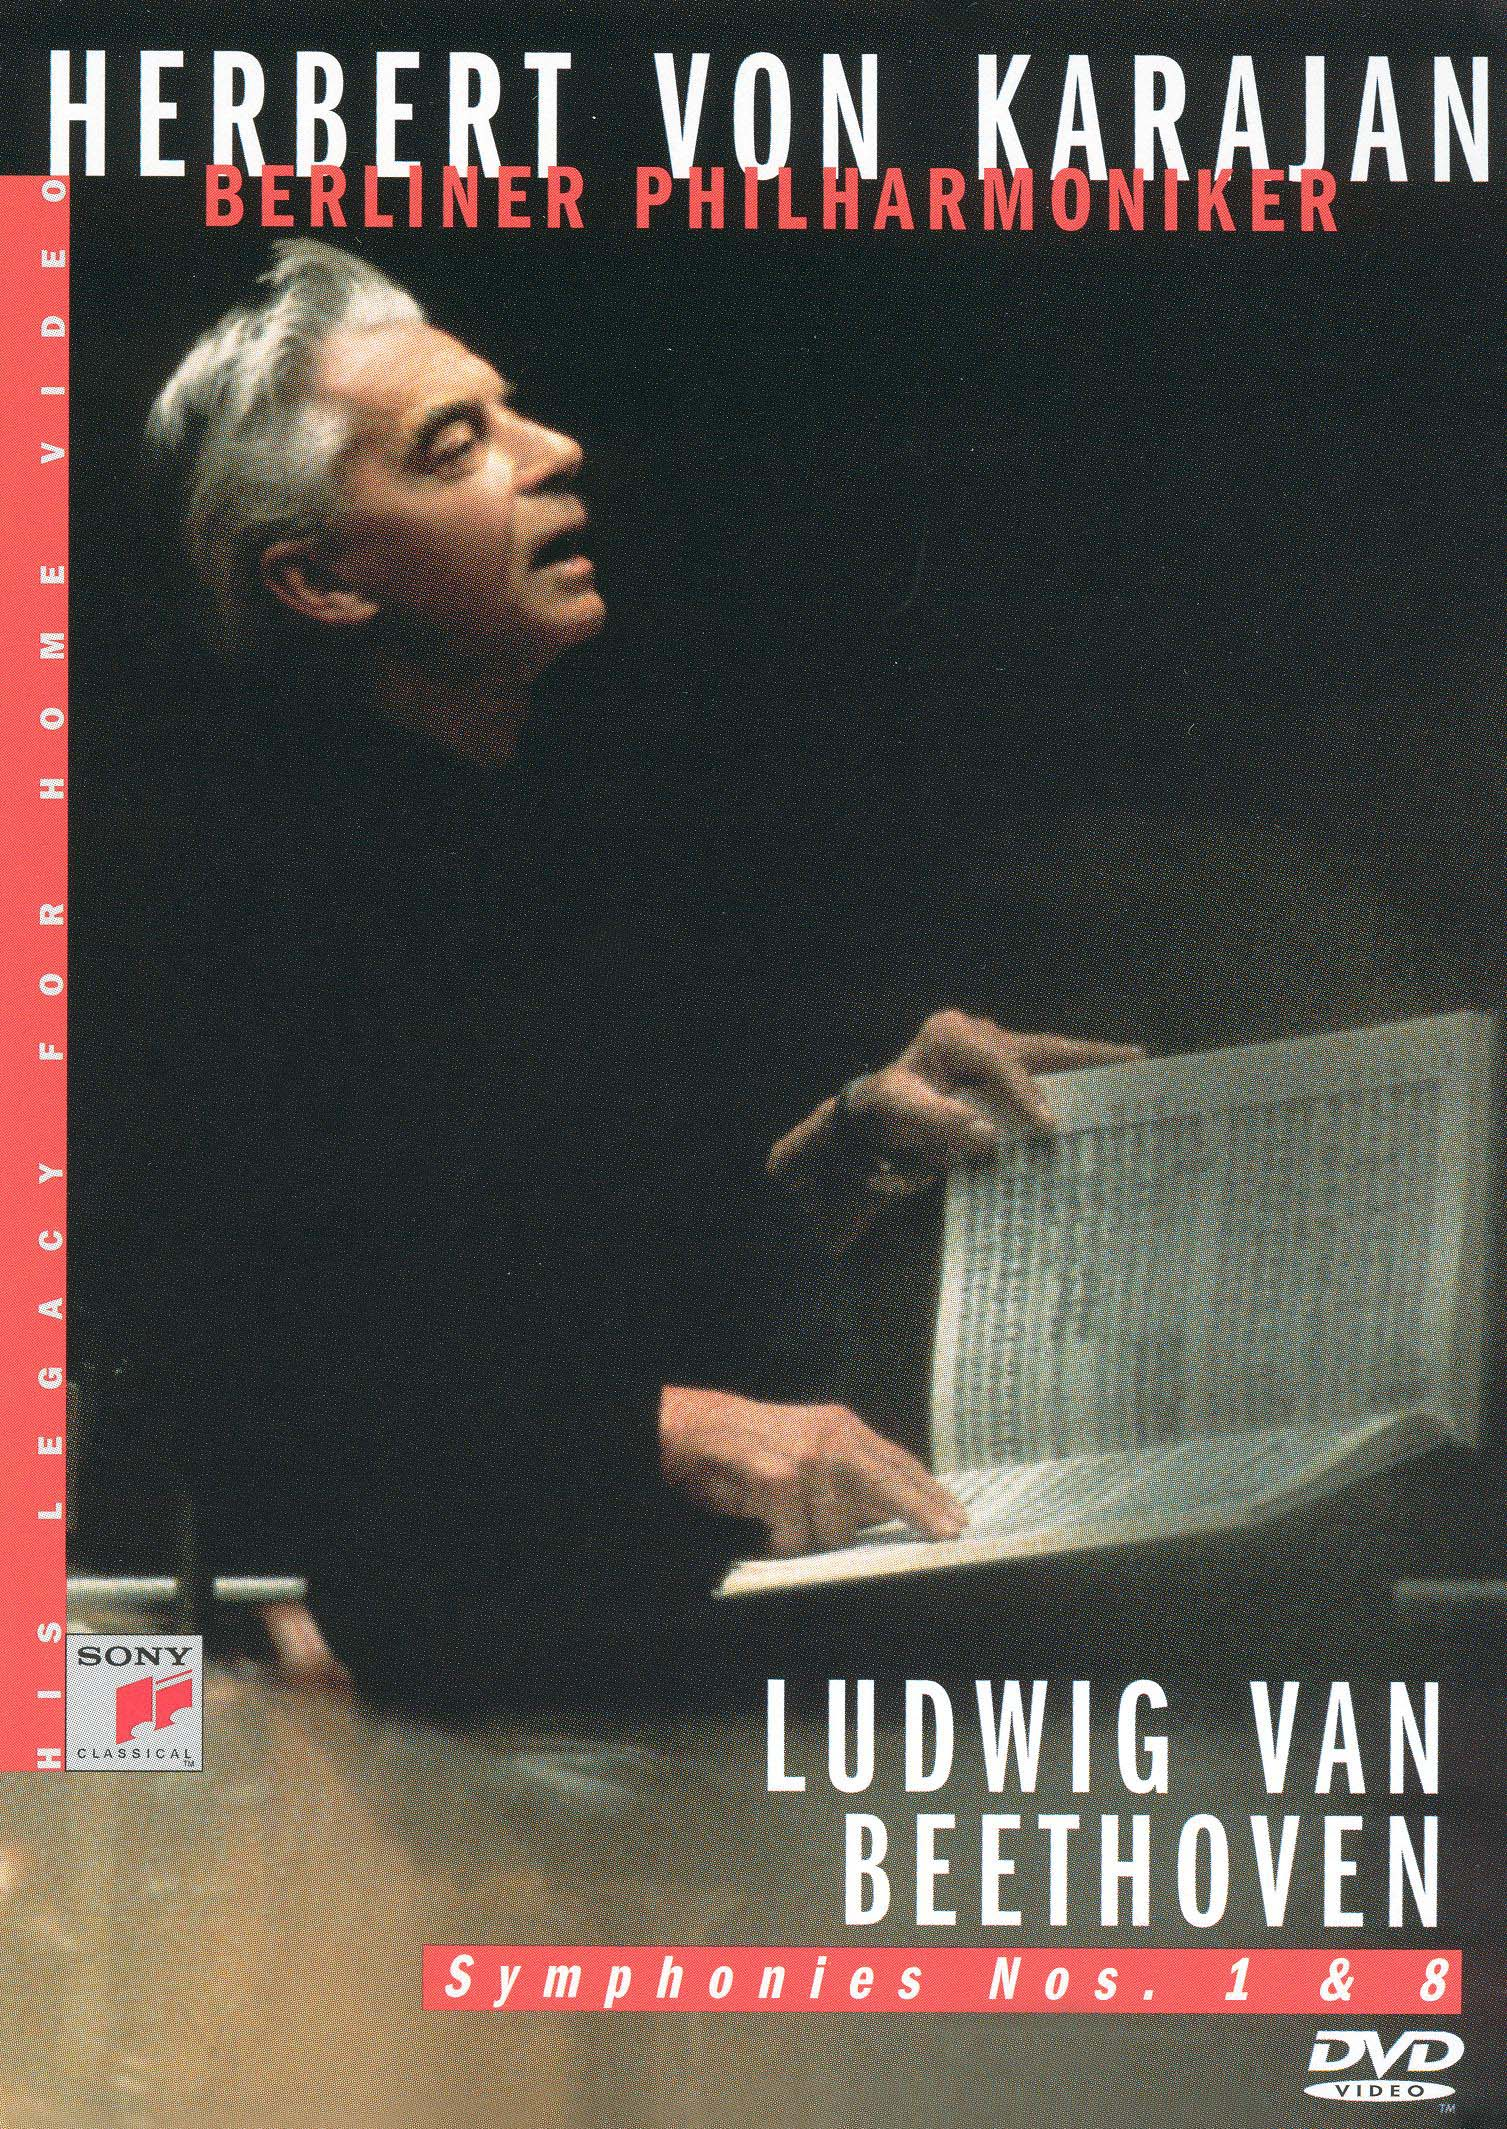 Herbert Von Karajan - His Legacy for Home Video: Beethoven Symphonies Nos. 1 & 8